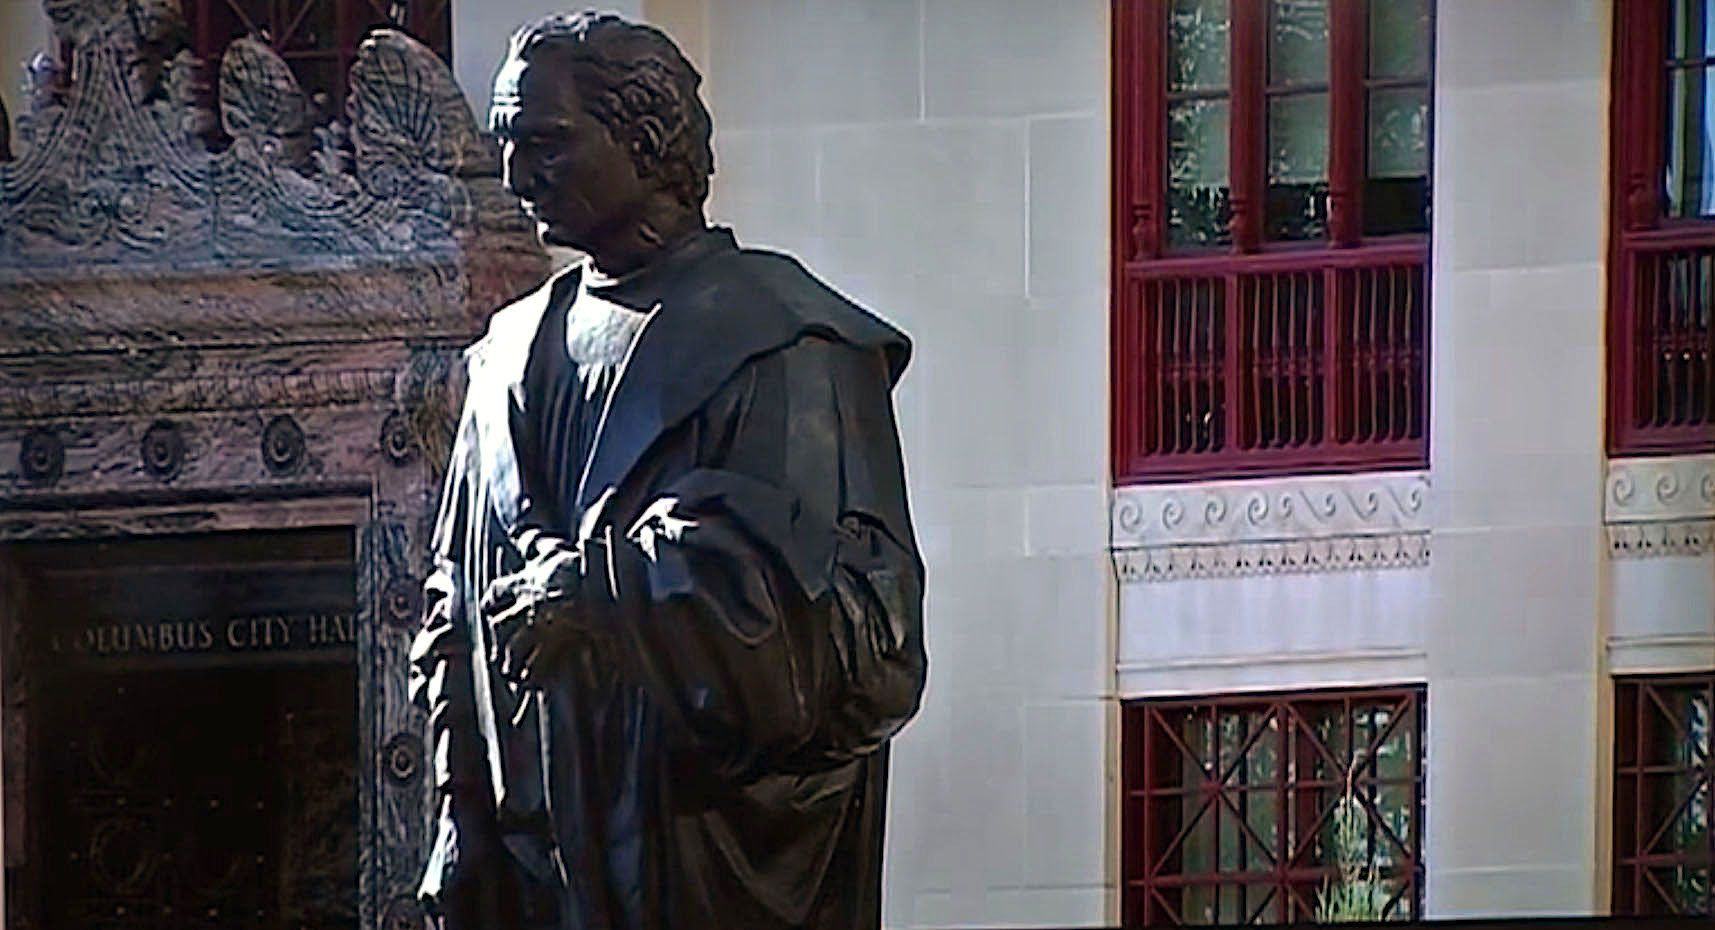 City hopes new signs will deter vandalism of Christopher Columbus statue